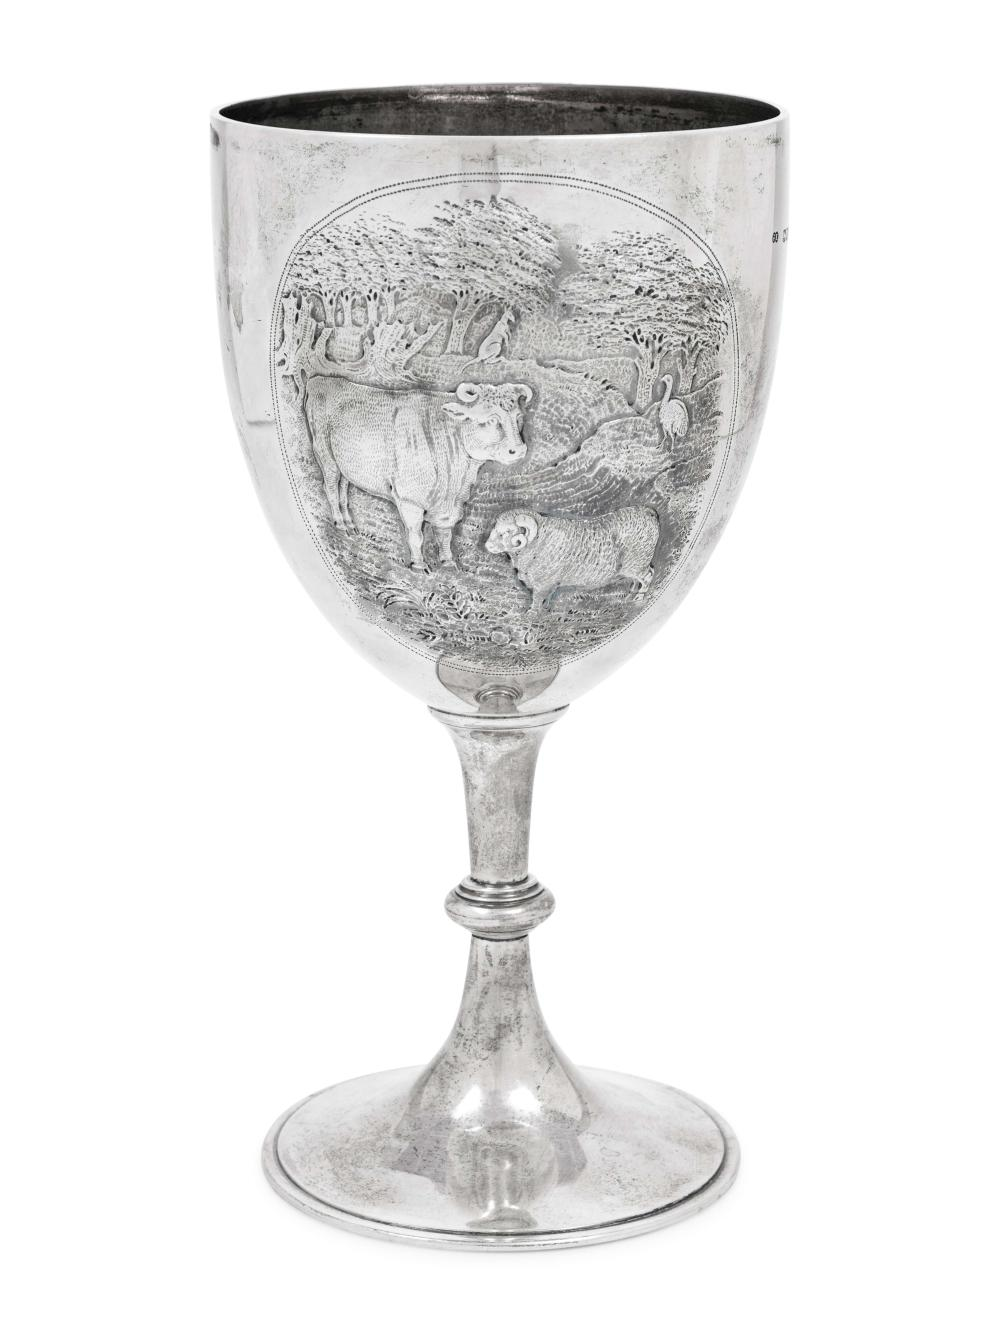 A Large Victorian Silver Chalice of Australian Interest